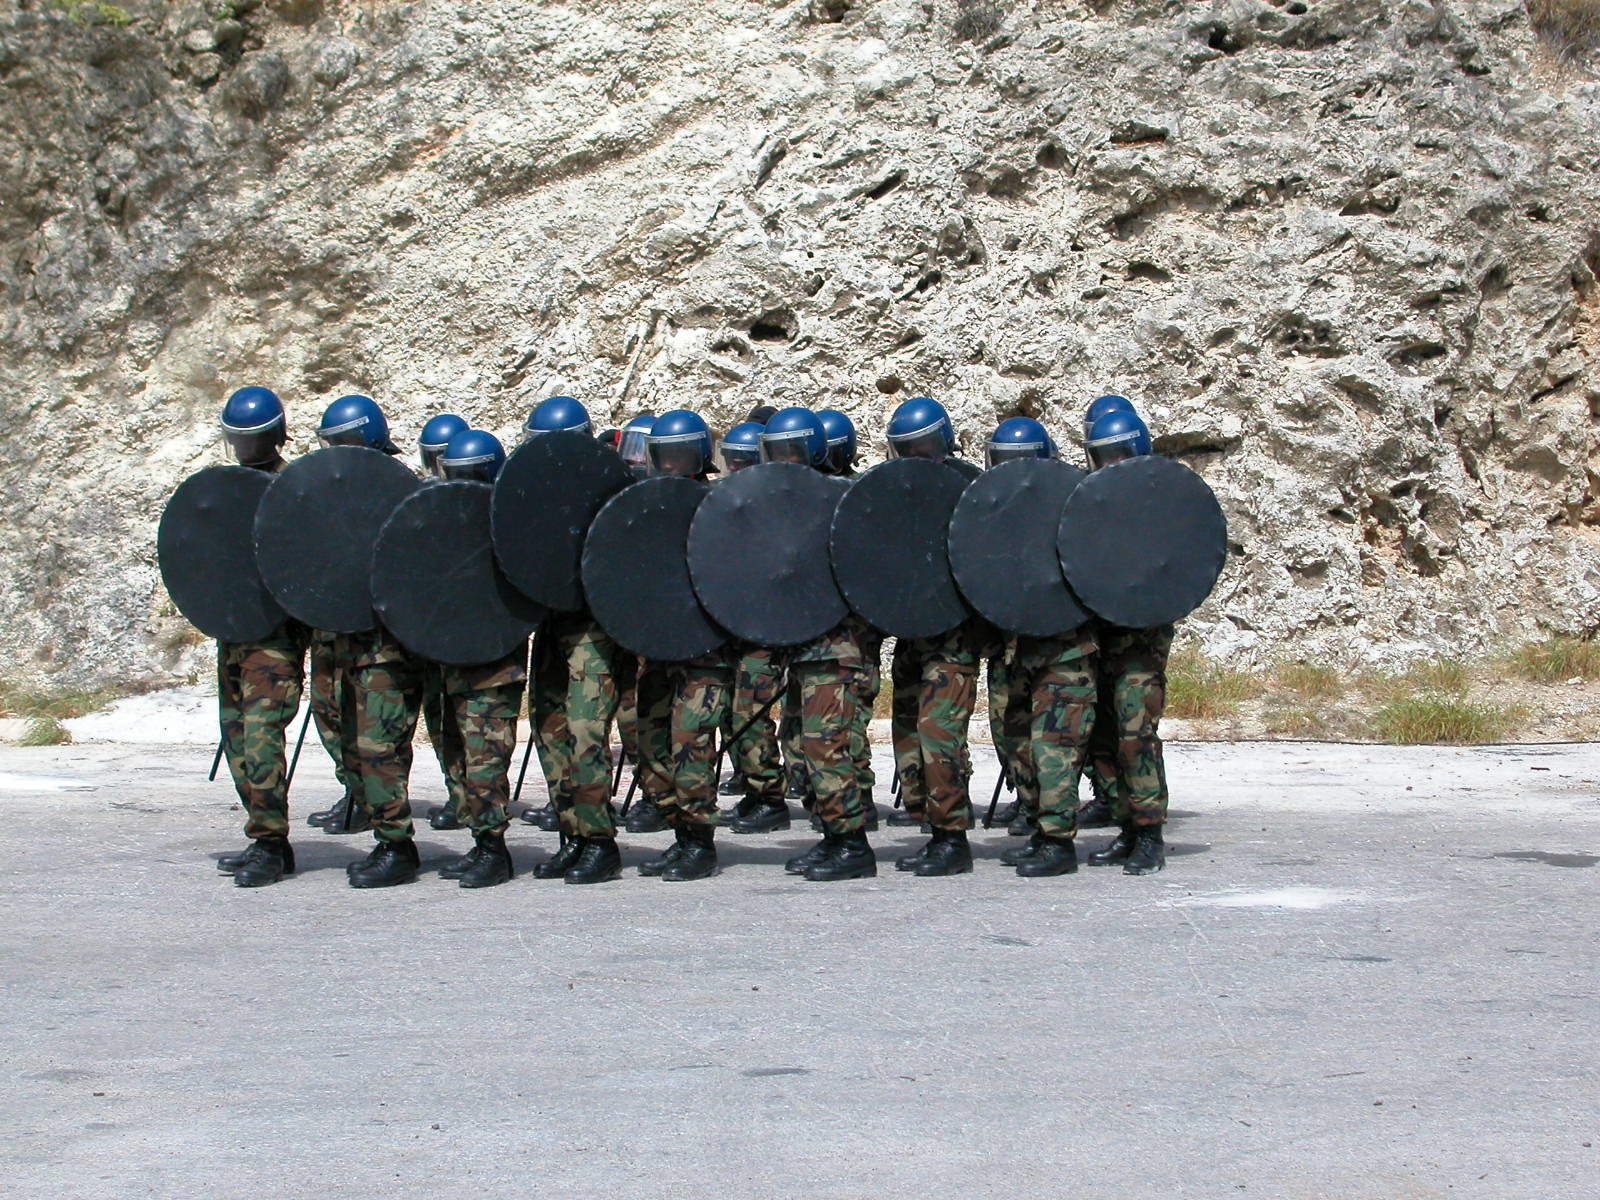 MP military riot control shields shield for fun try adding this image in front of them: http://69.44.157.231/image.php?image=b1capricornbaby002.jpg royalty free